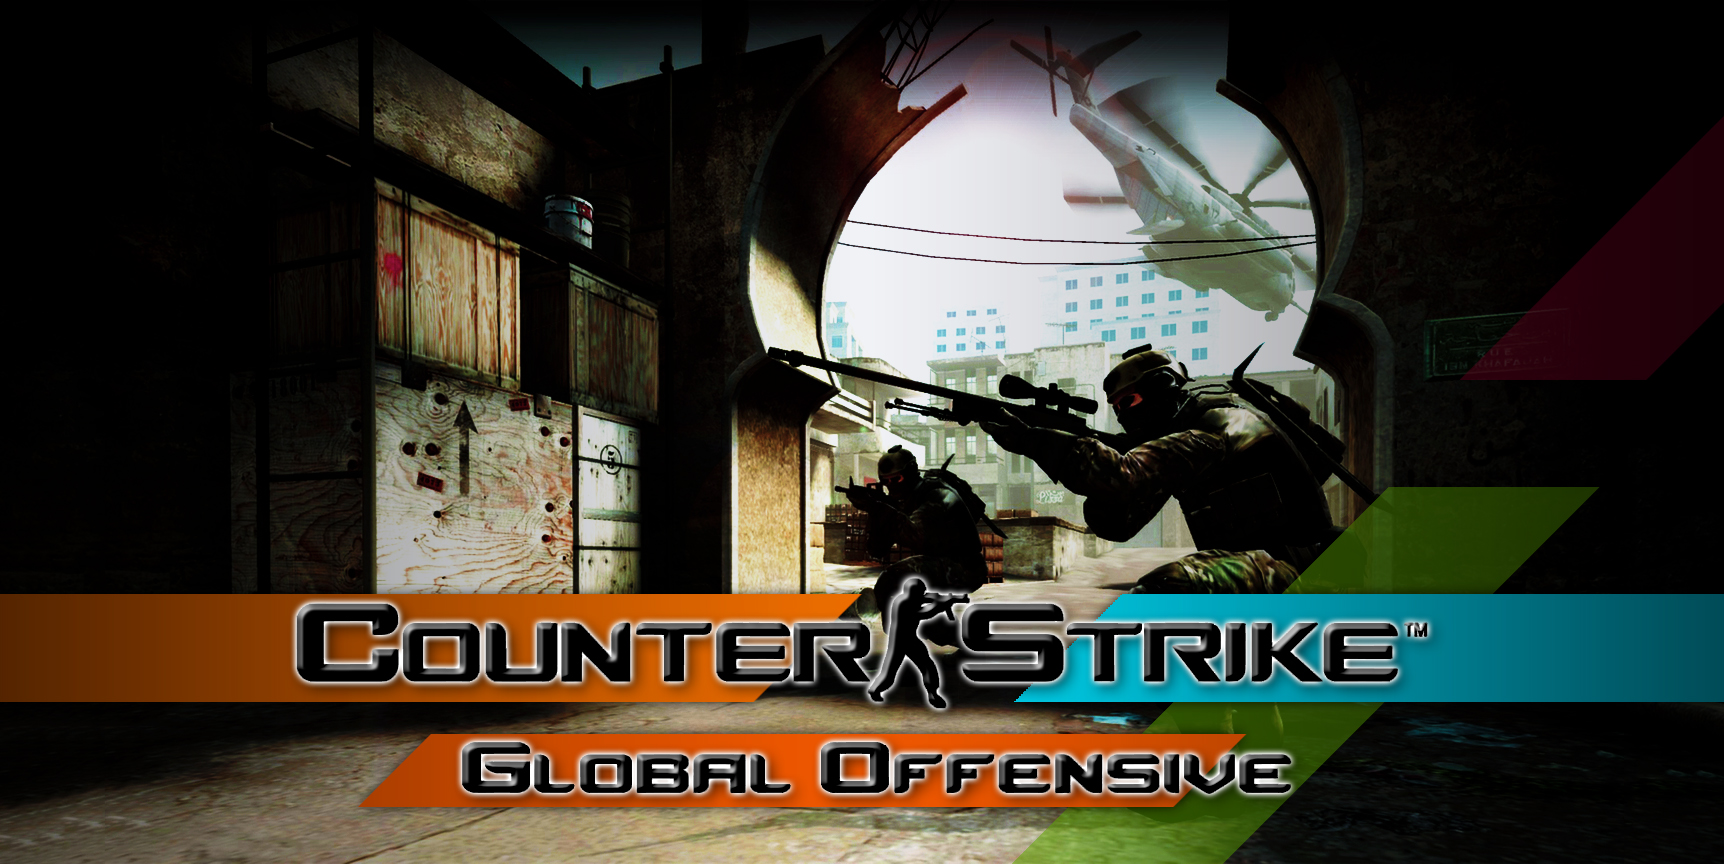 Counter-strike: global offensive league of legends